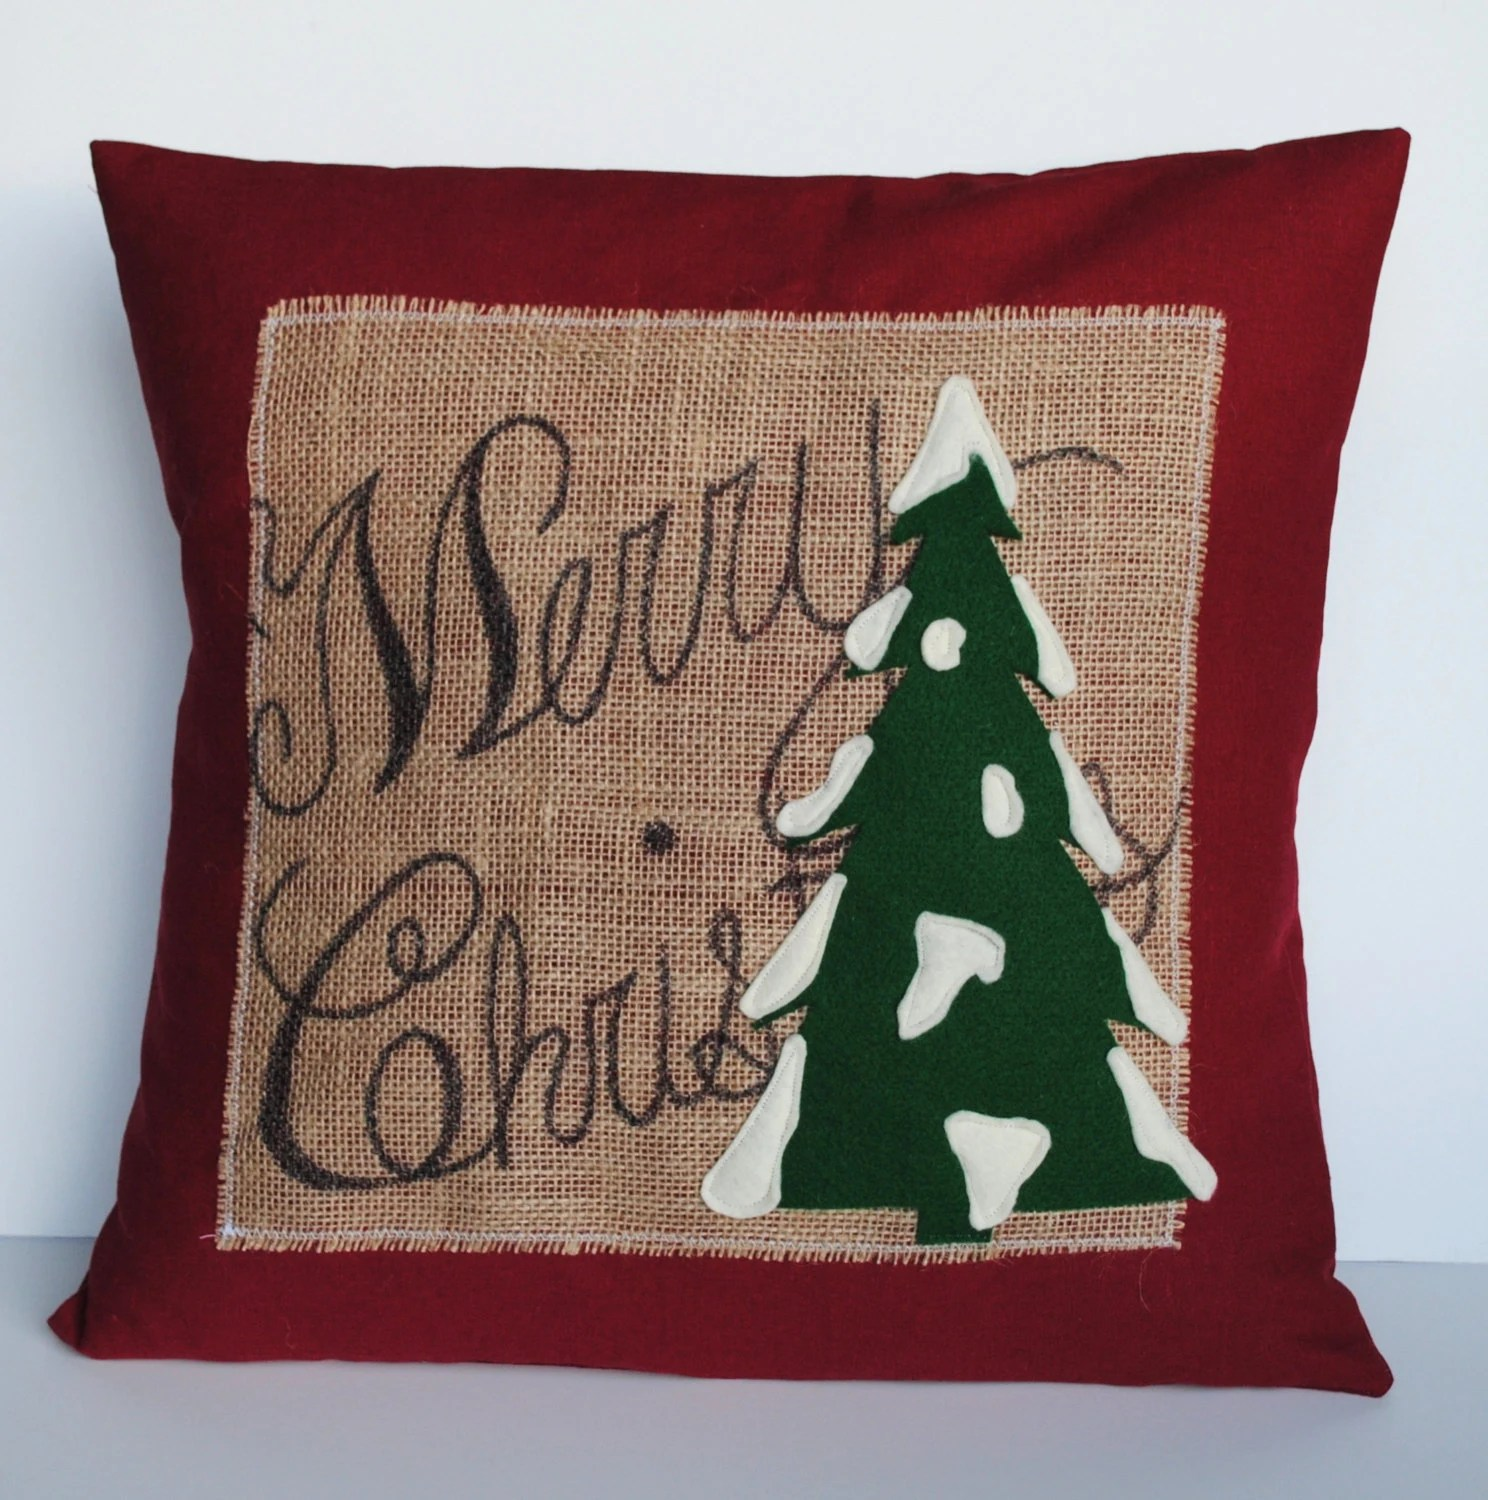 Cushion Covers Christmas One 39merry Christmas 39 Tree Pillow Cover By